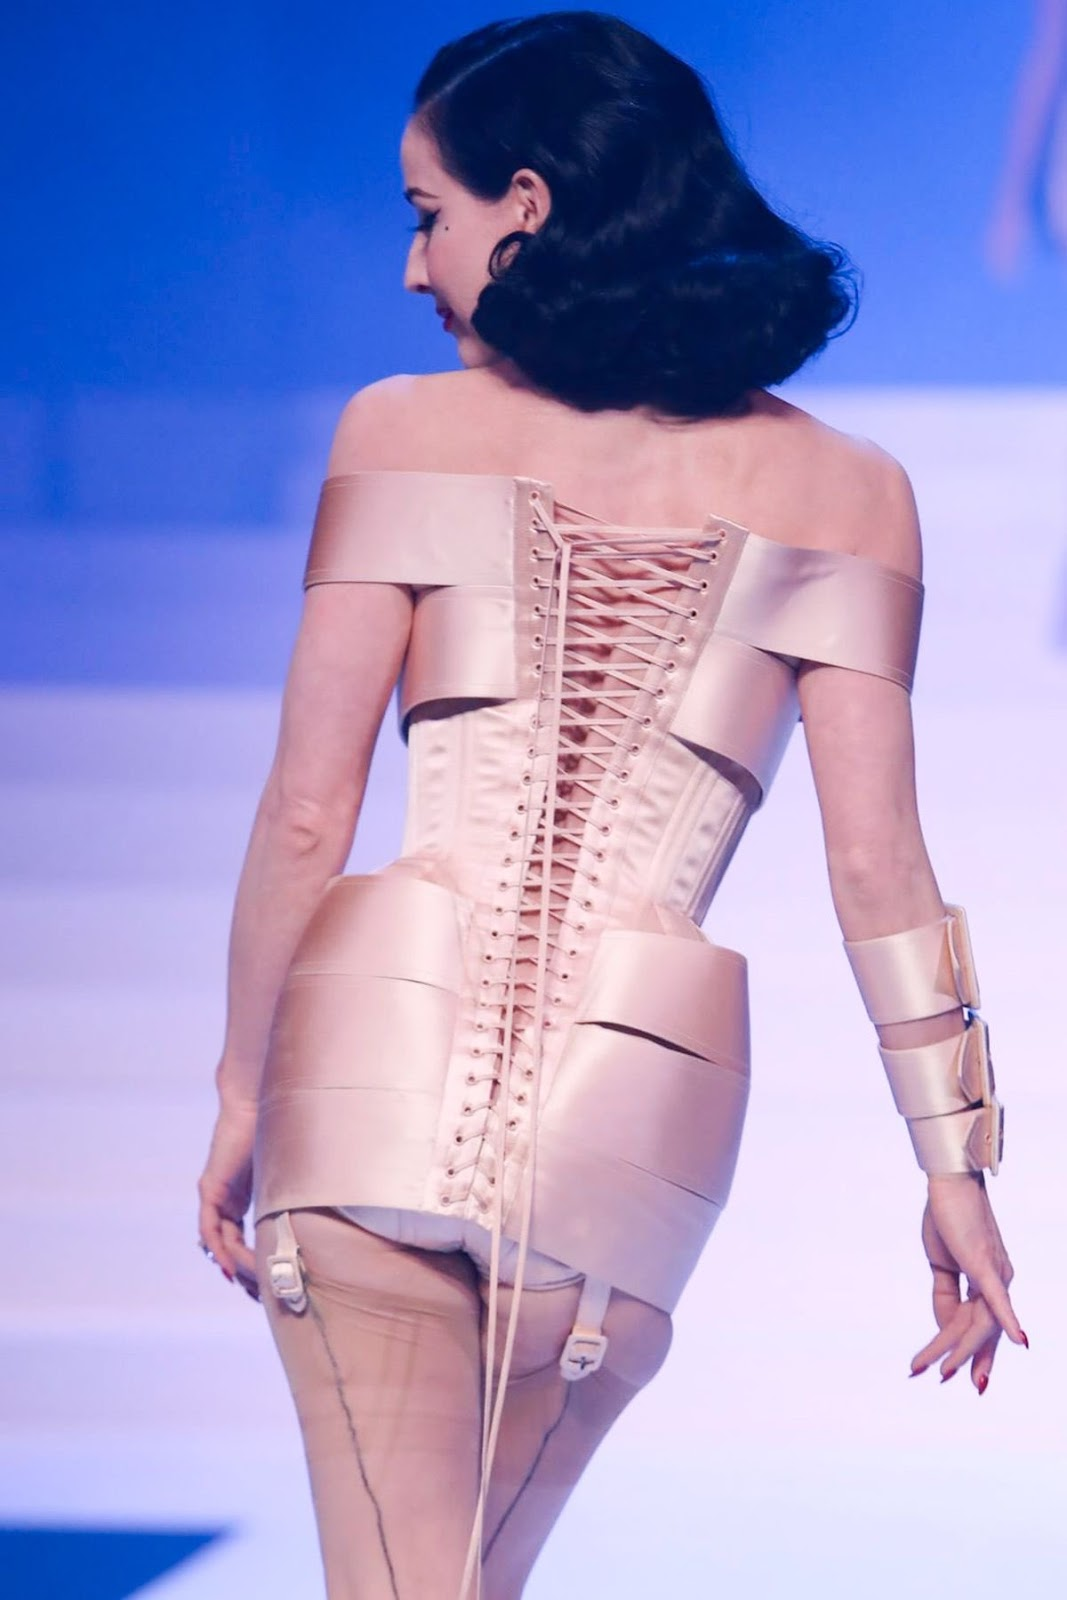 Dita Von Teese for Jean Paul Gaultier's final collection, Haute couture SS20